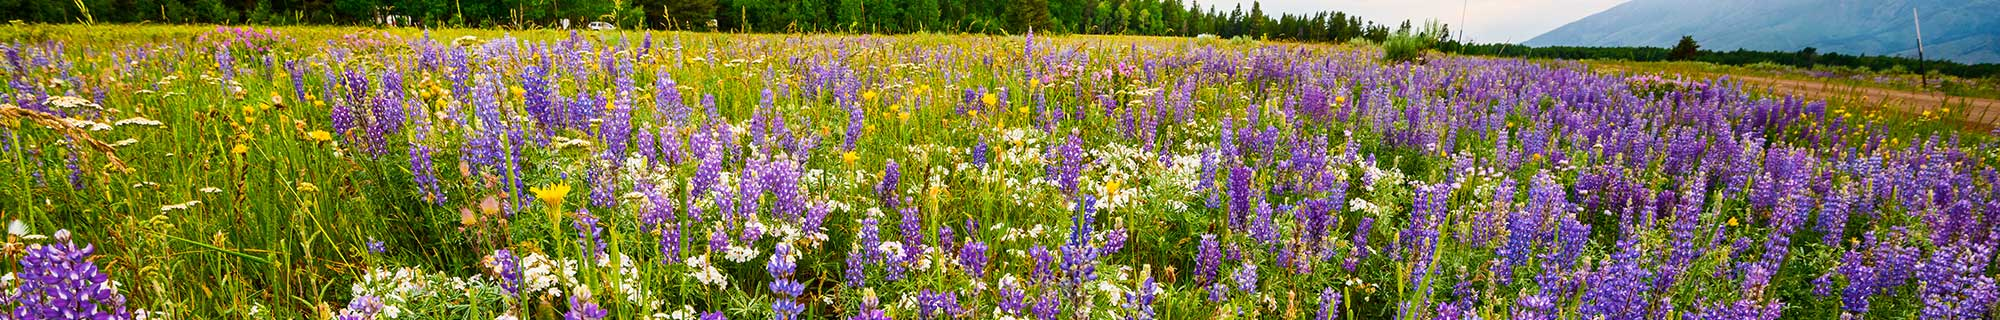 wild flowers in a field